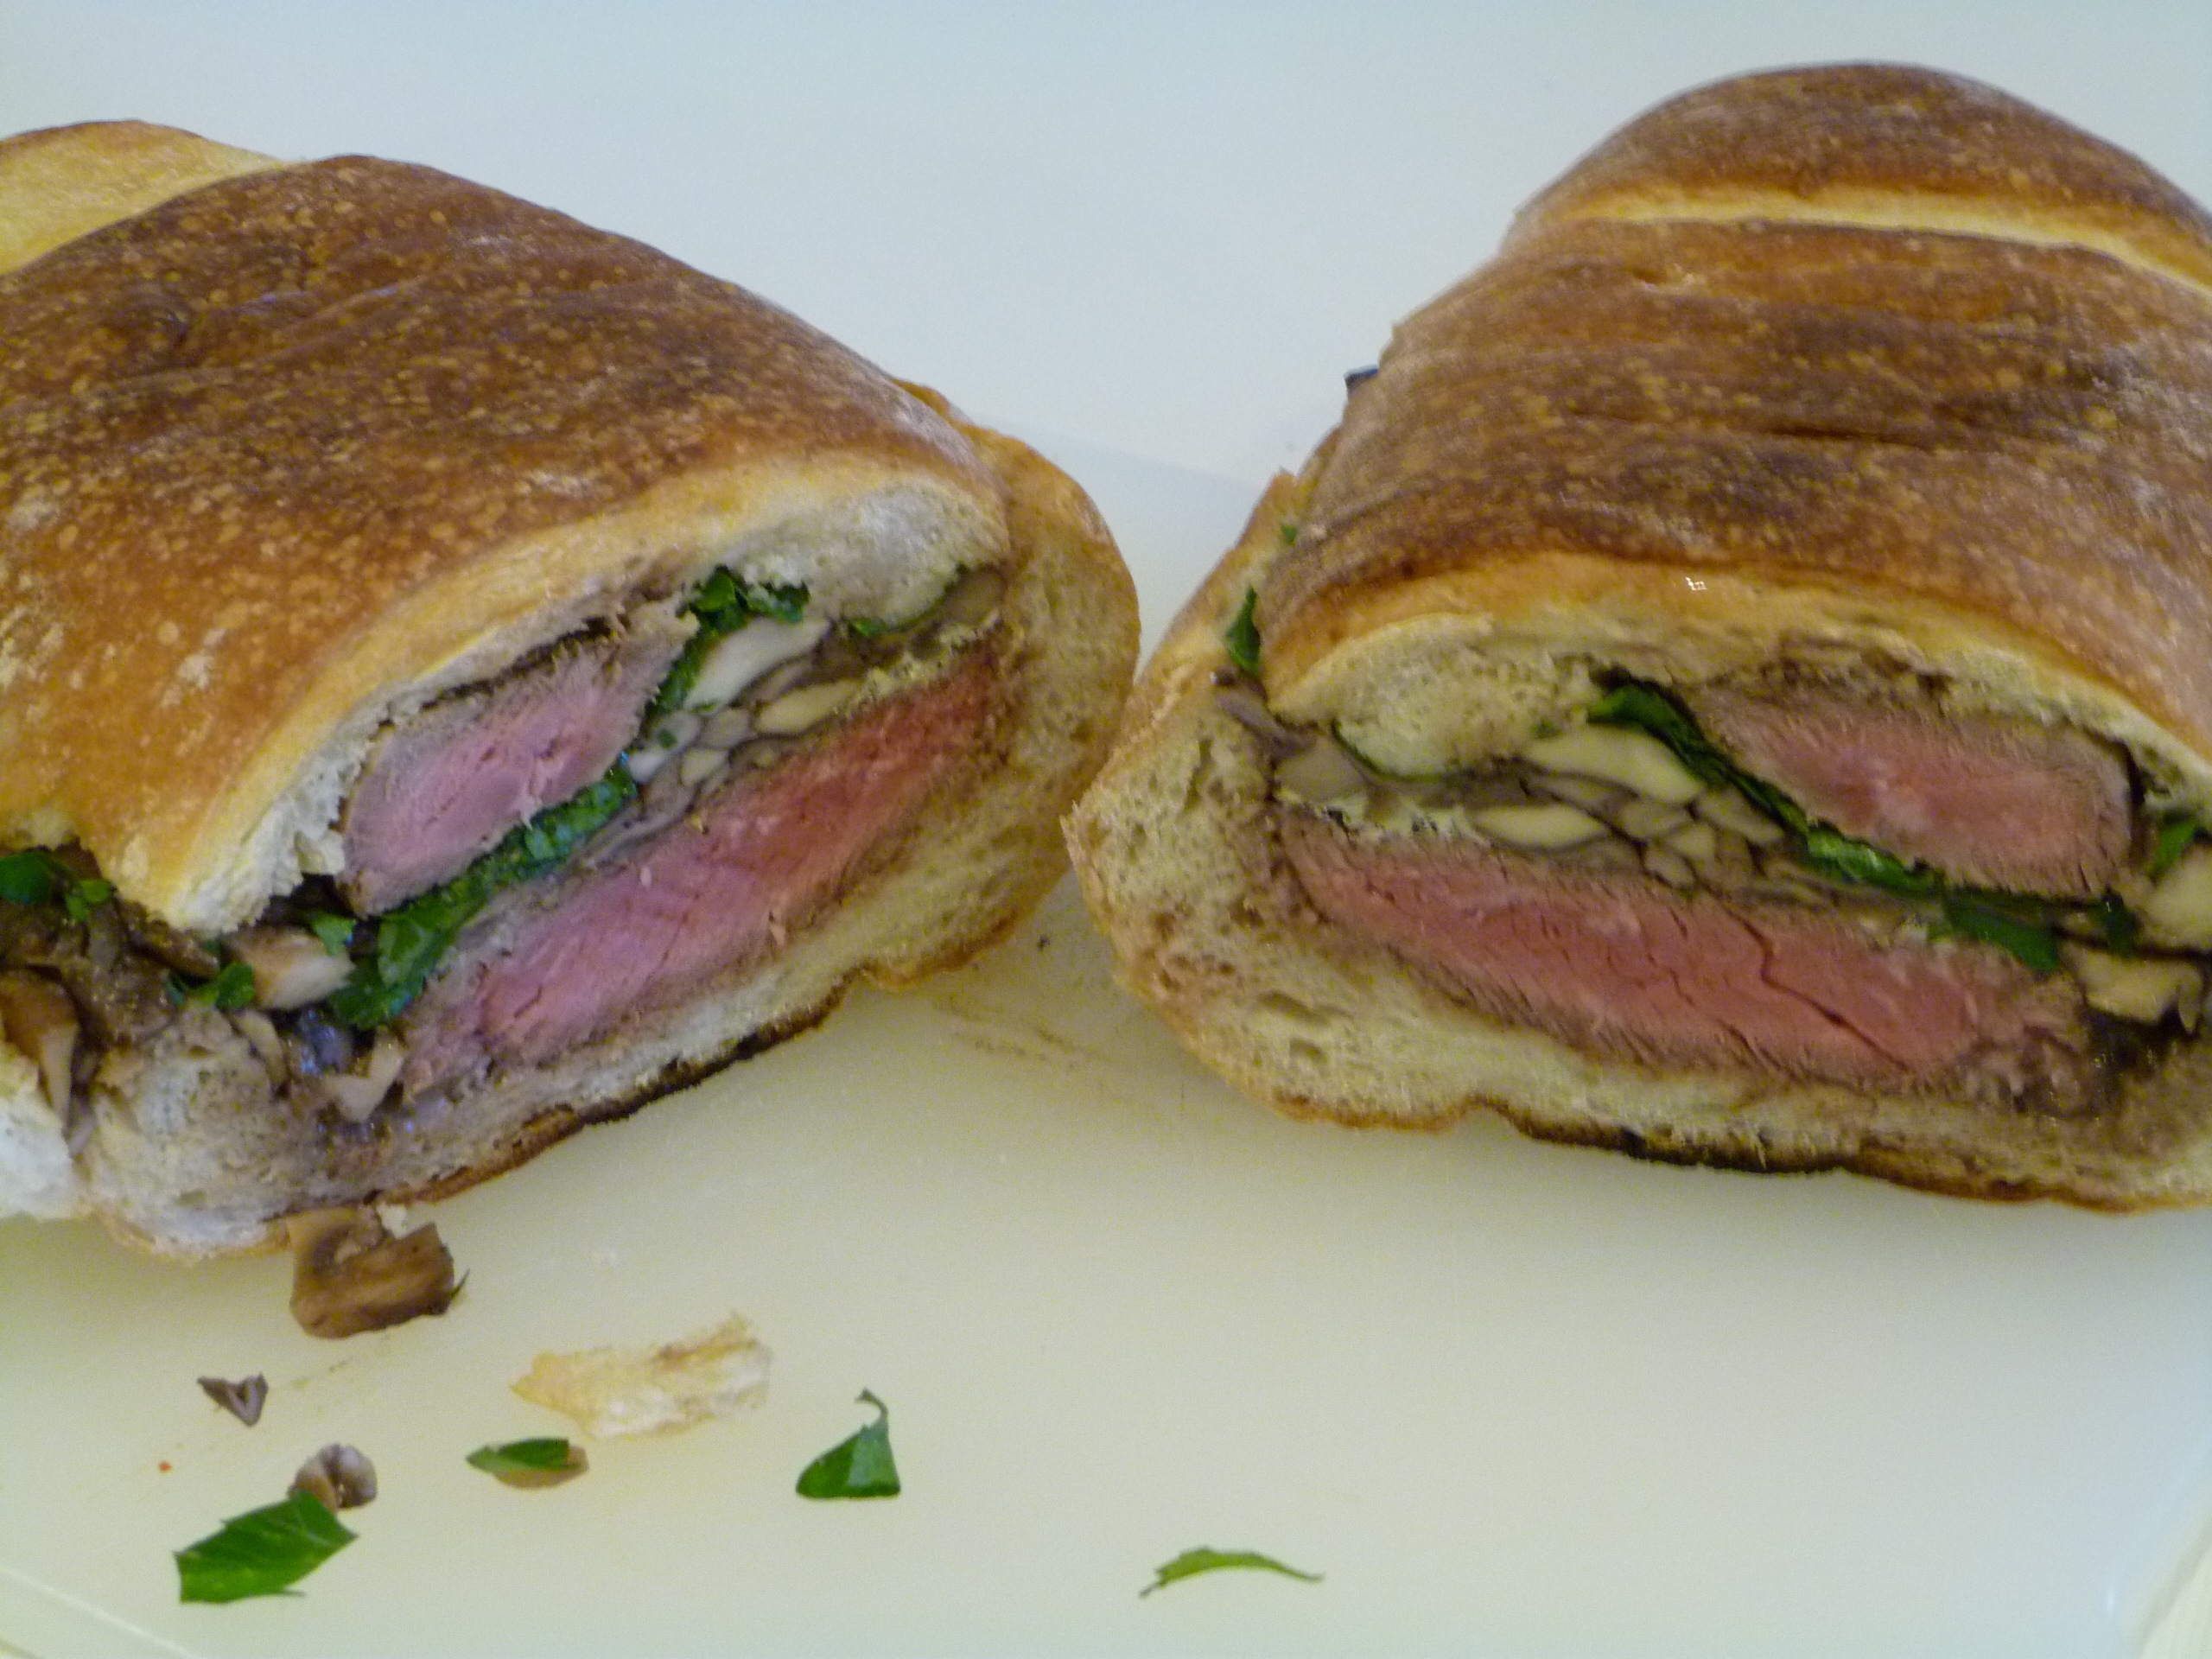 Shooter sandwich